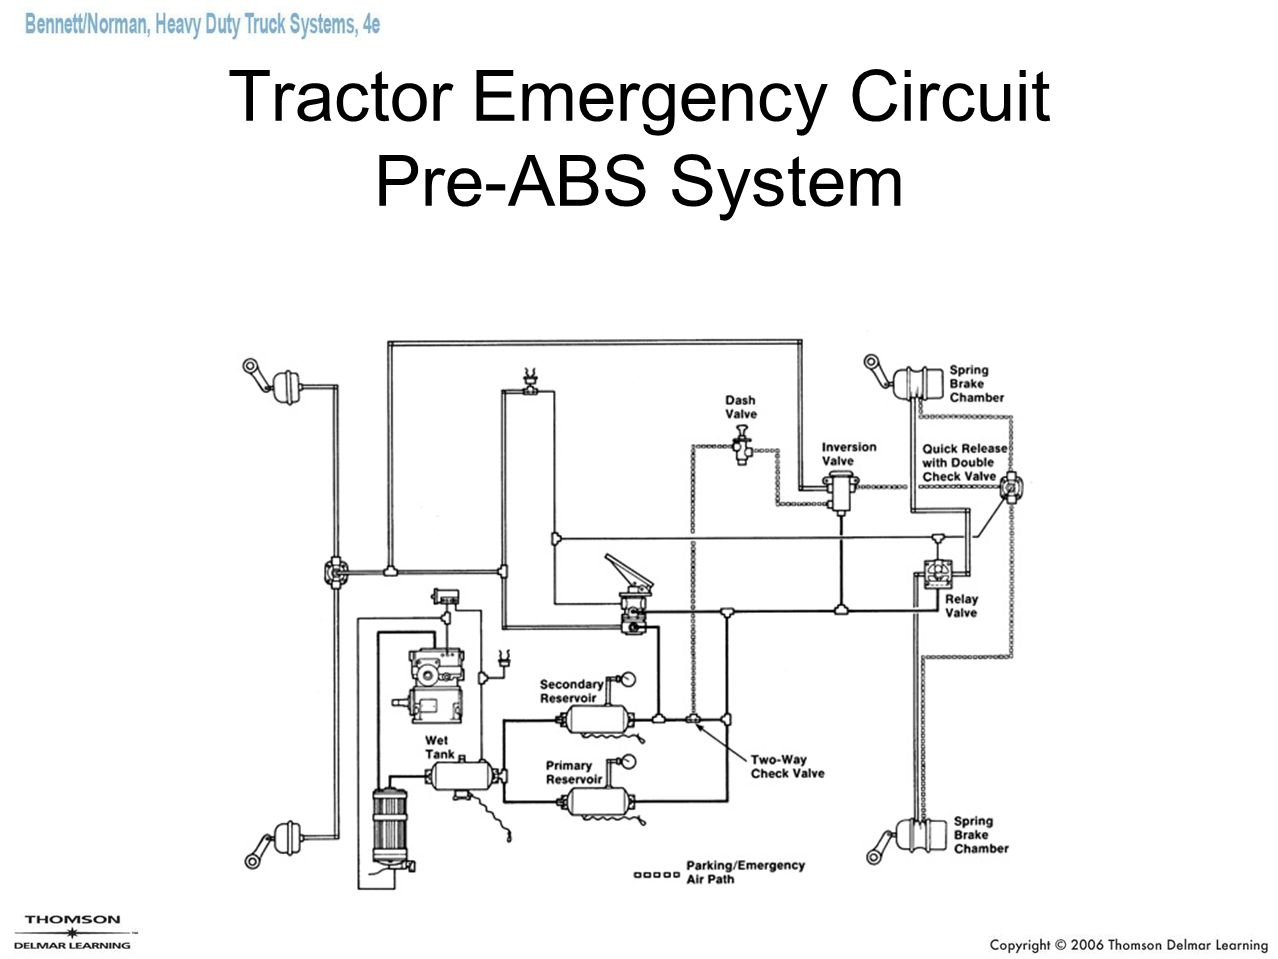 Tractor Emergency Circuit Pre-ABS System